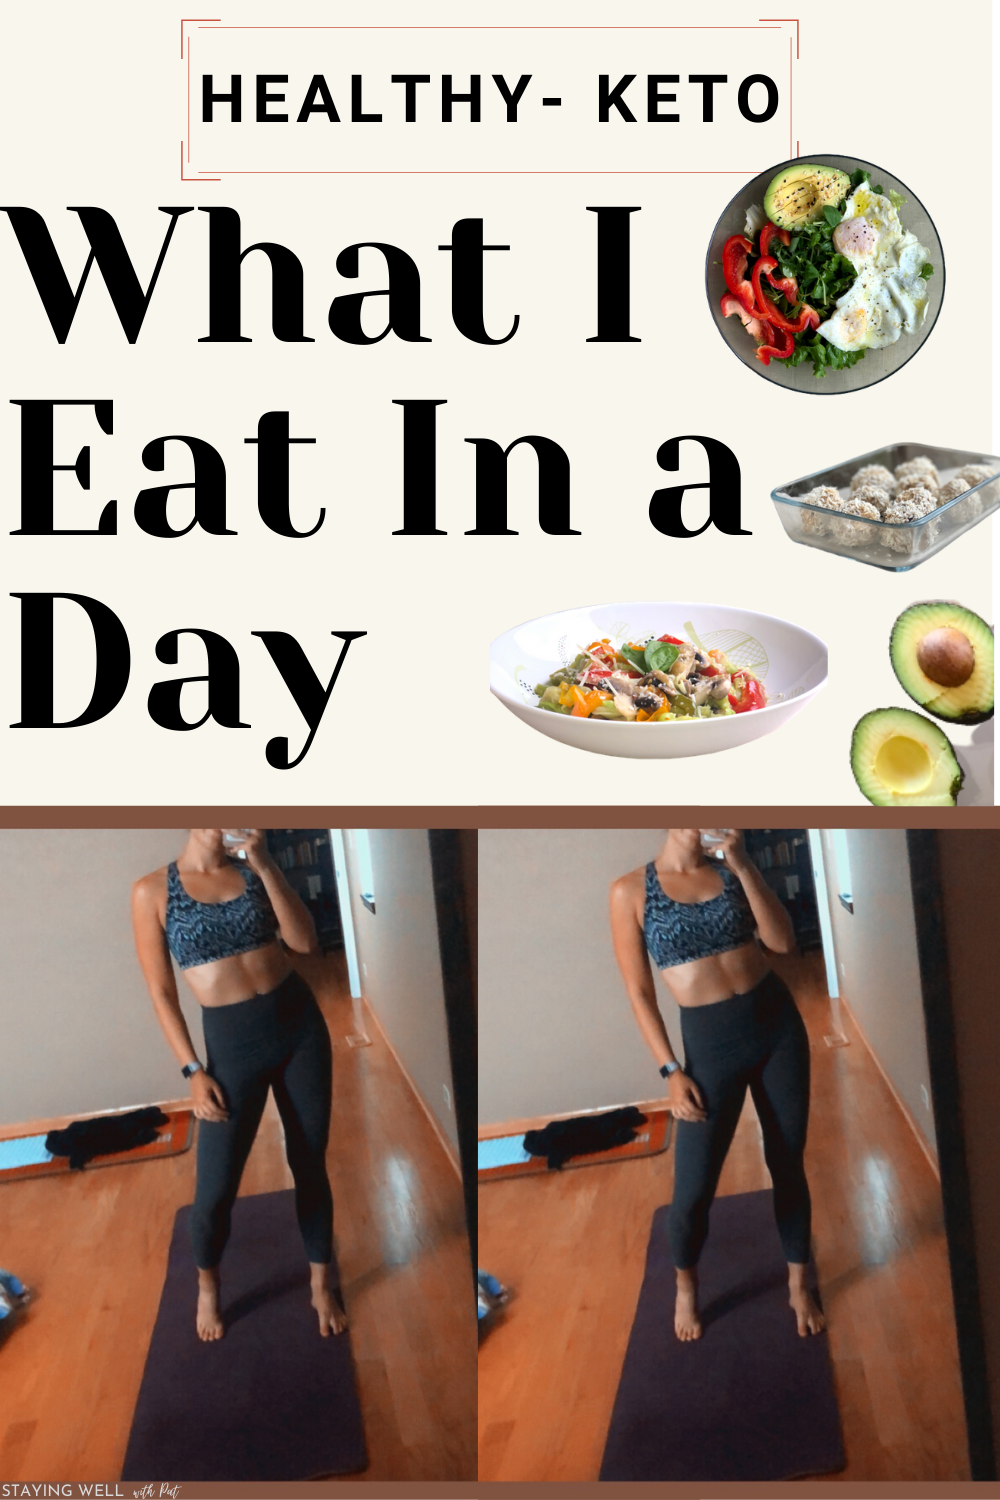 Pin on Healthy Food to Lose Weight recipes